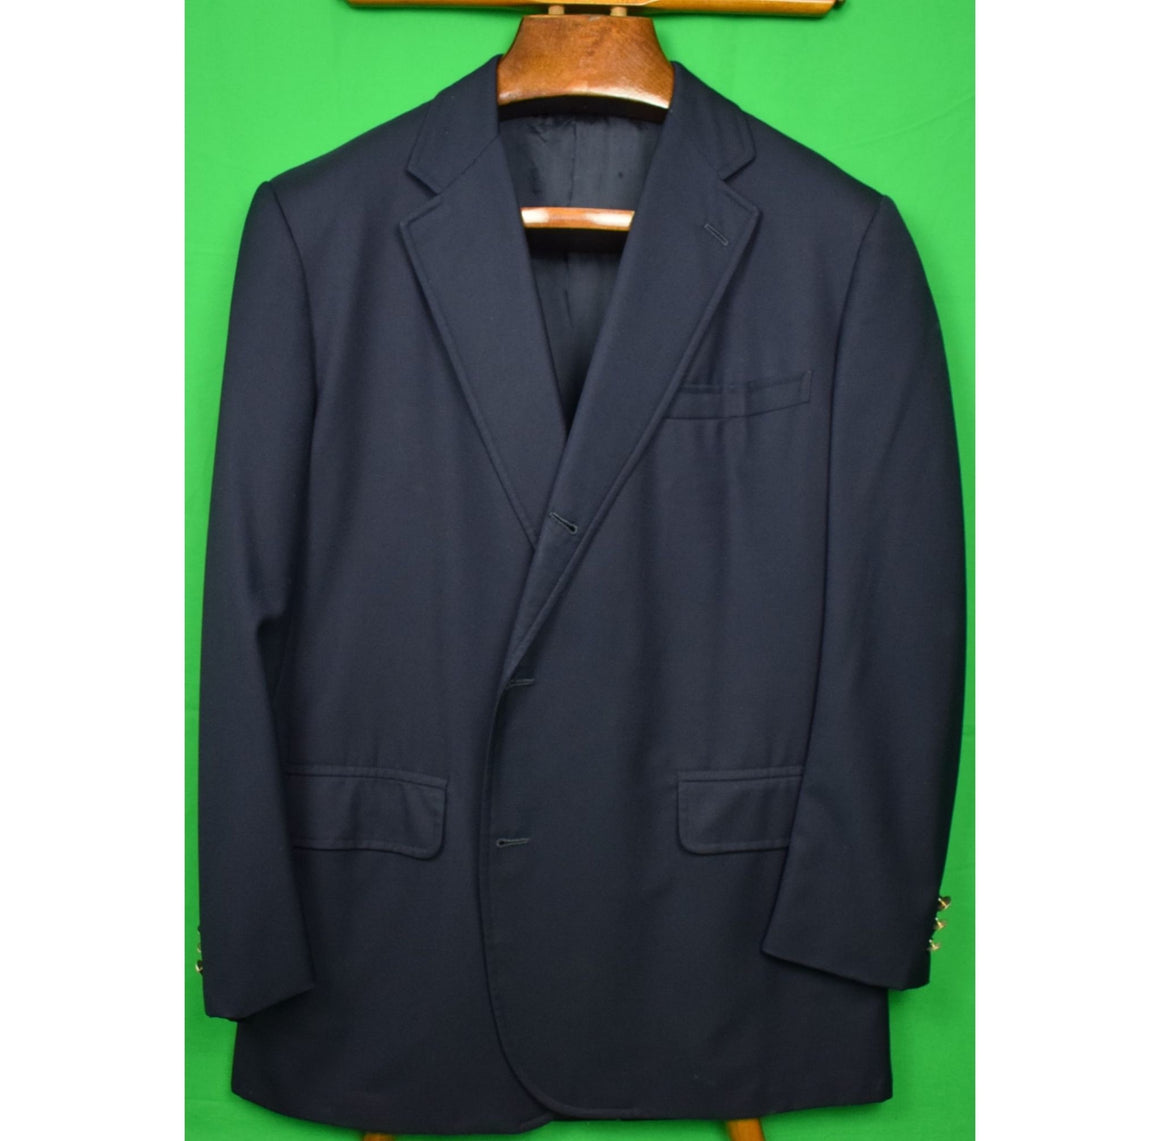 Brooks Brothers 2001 Custom Tailored Navy Blazer w/ Racquet & Tennis Club Buttons Sz 44R